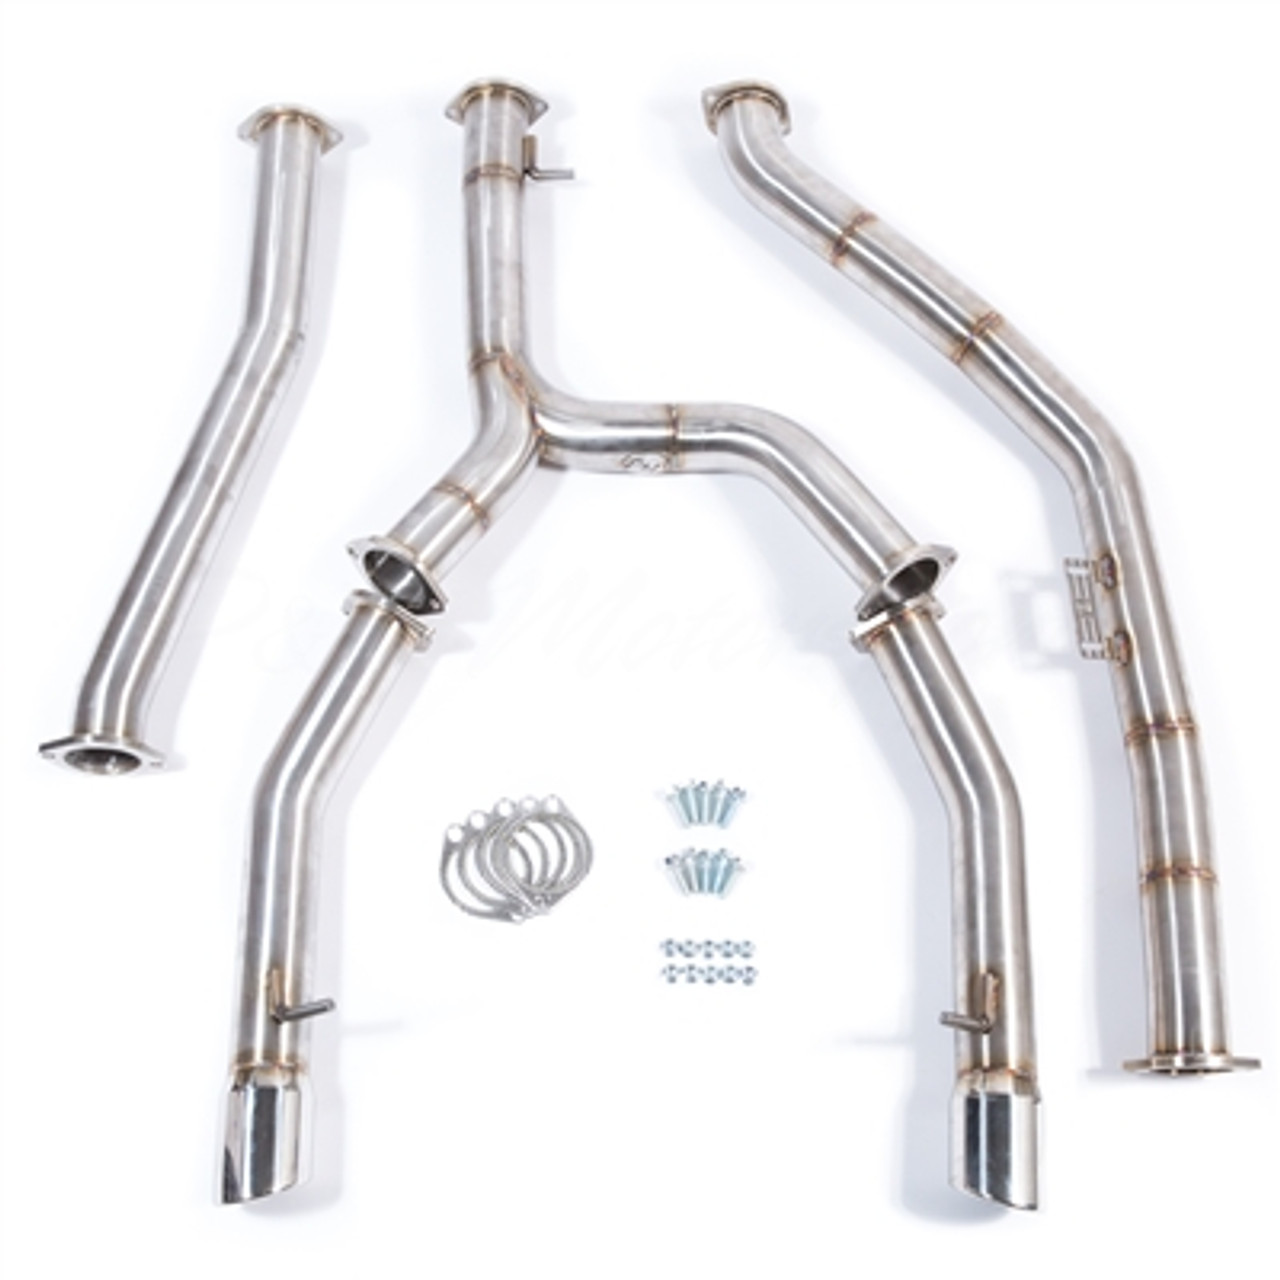 BMW 335D Catback Exhaust Kit - 304 Stainless Steel (PL-BMW500)